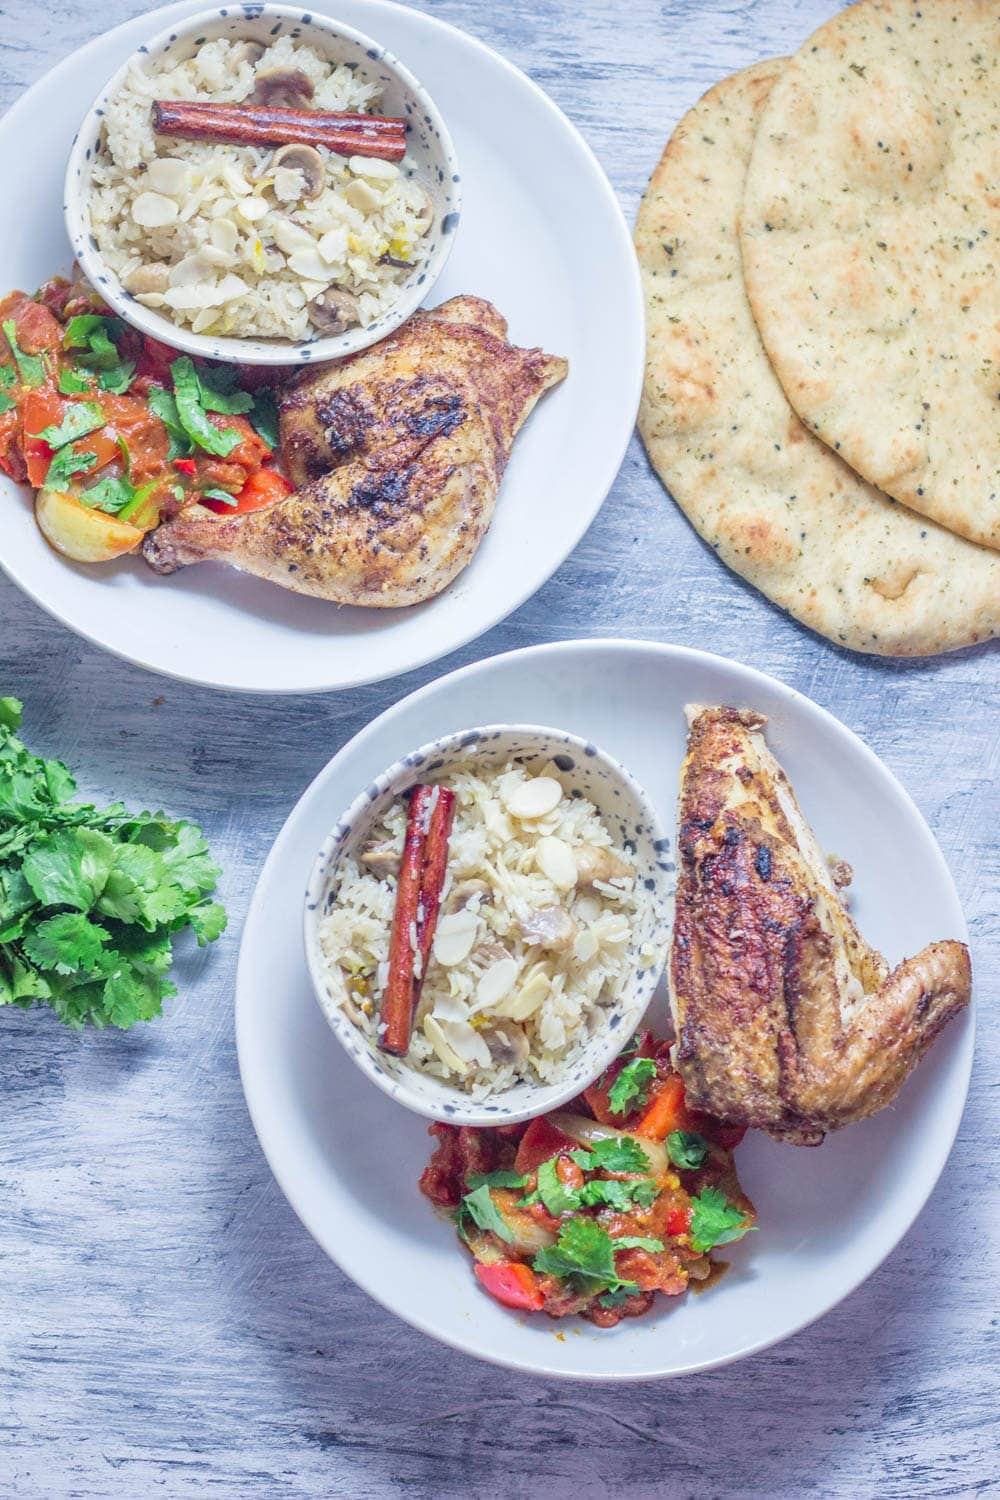 This spiced chicken with jalfrezi sauce is a fun way to mix up your roast dinner! Serve with a helping of mushroom rice to warm you up this winter. #chicken #dinner #indianfood #jalfrezi #roastdinner